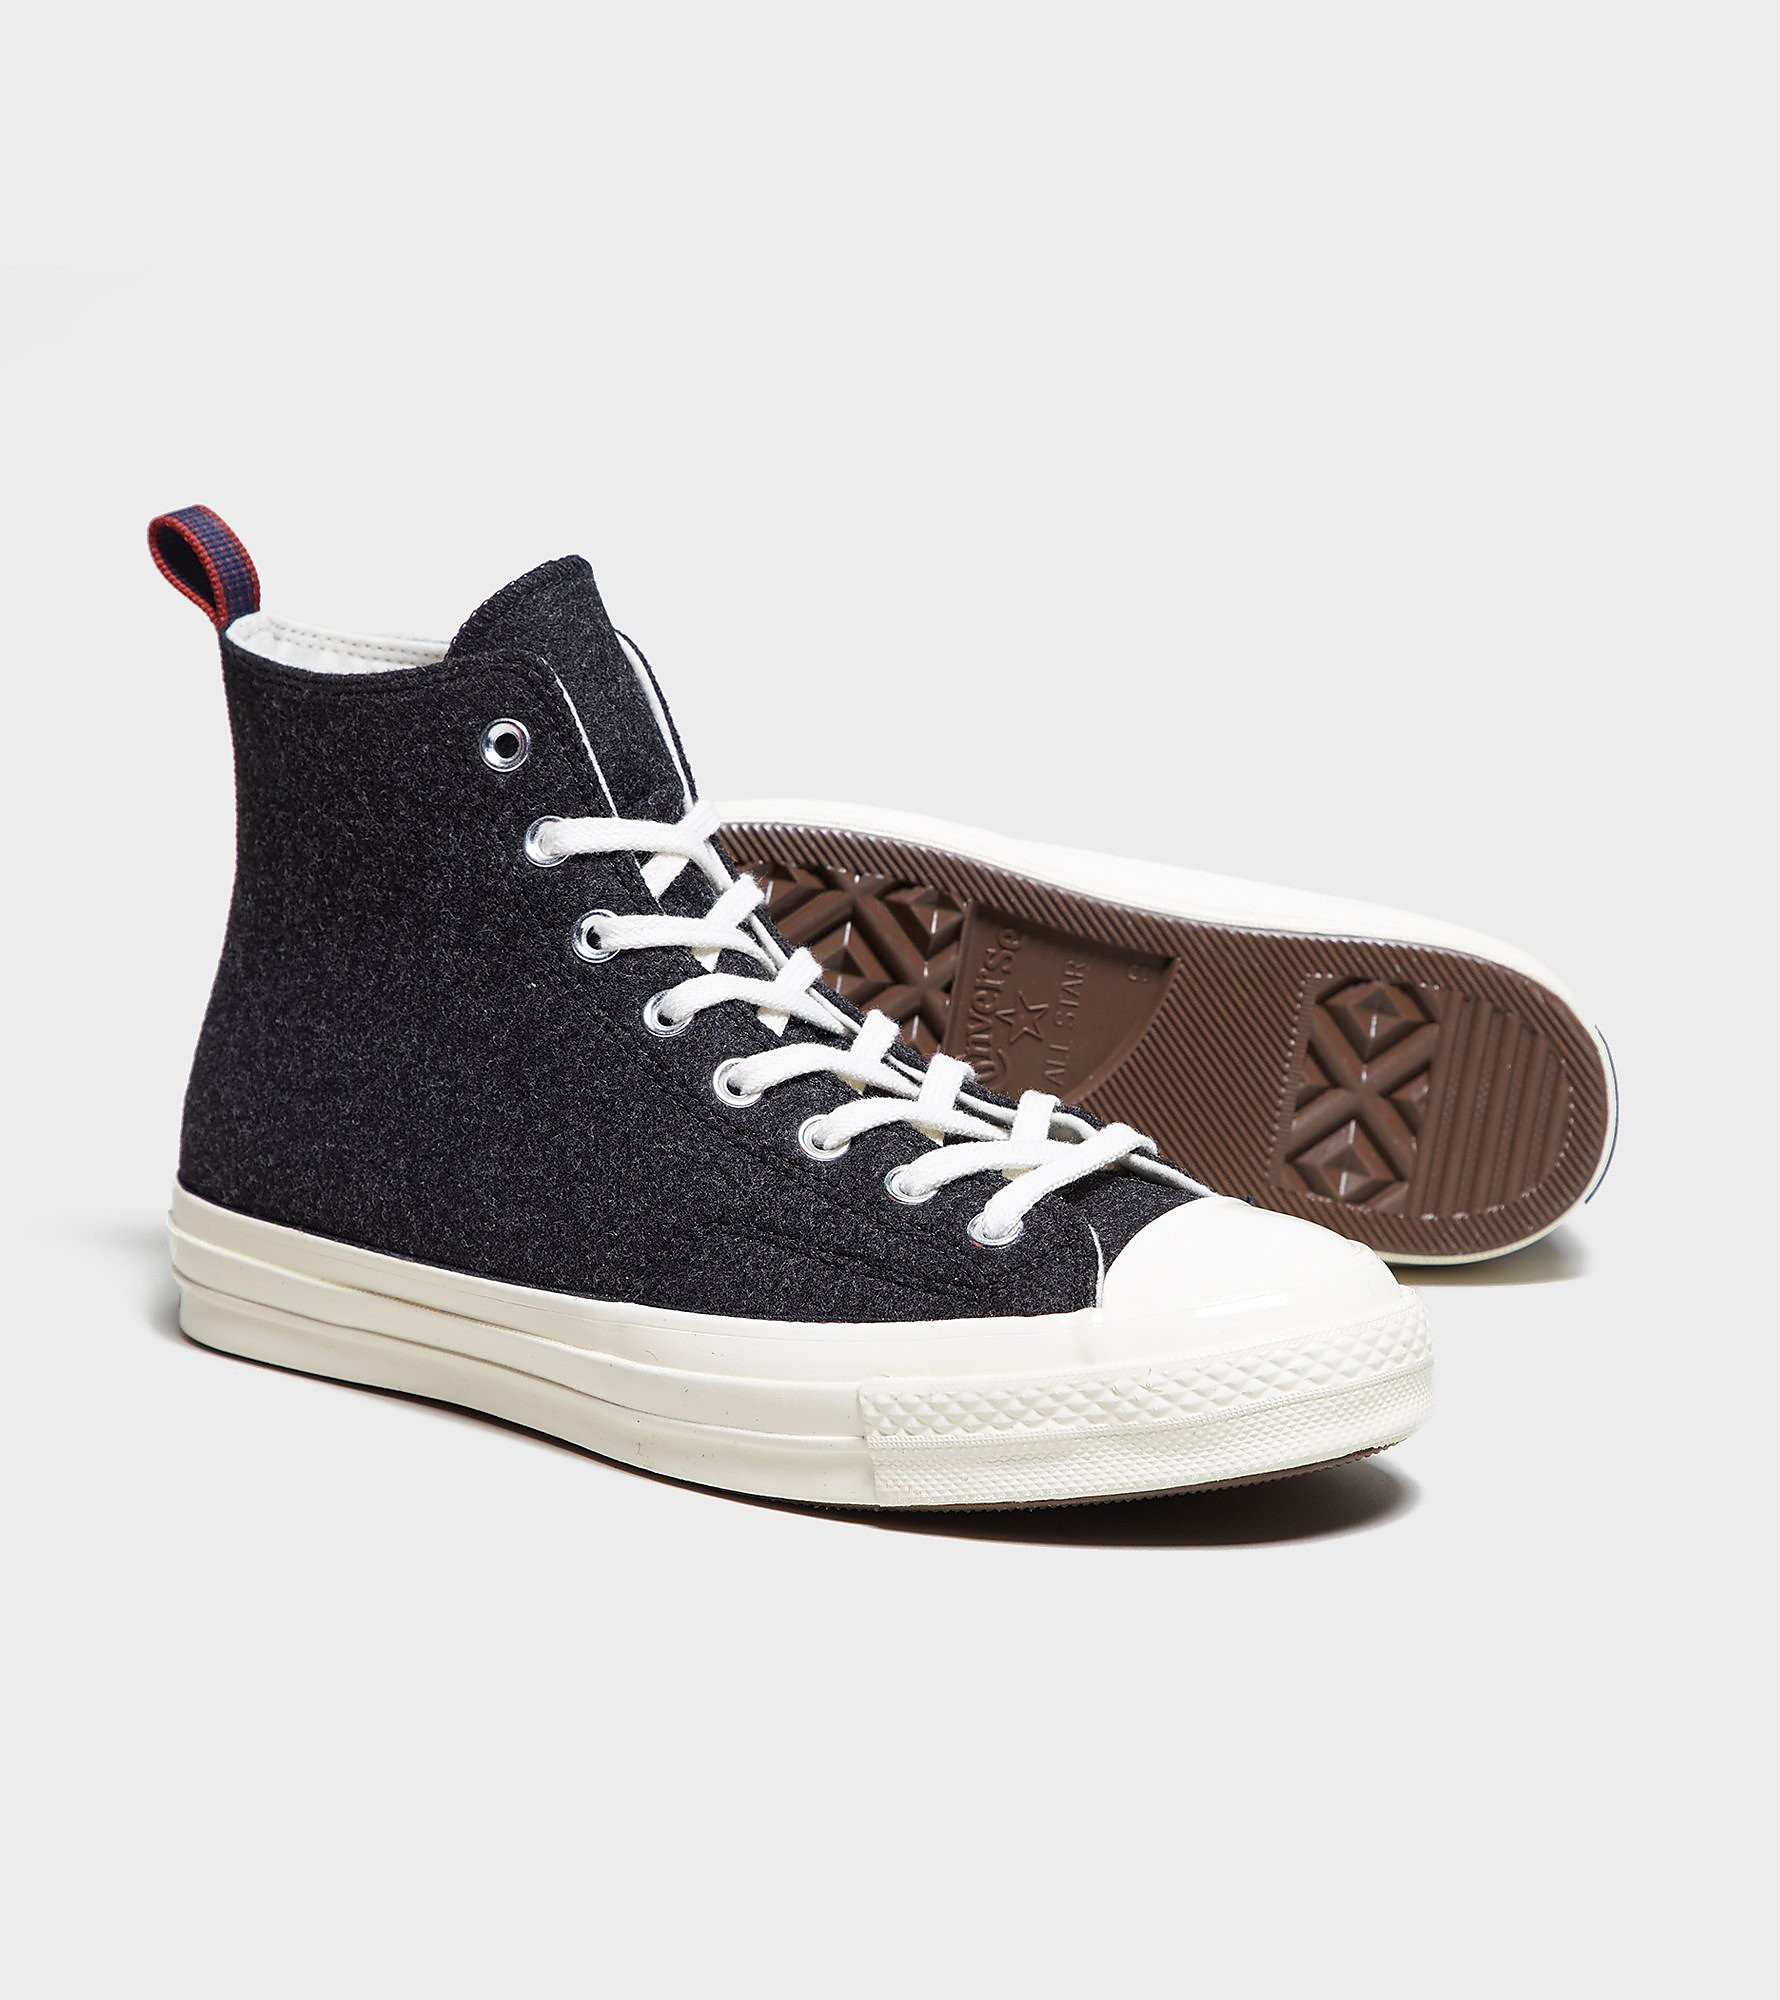 Converse All Star High 70's Wool